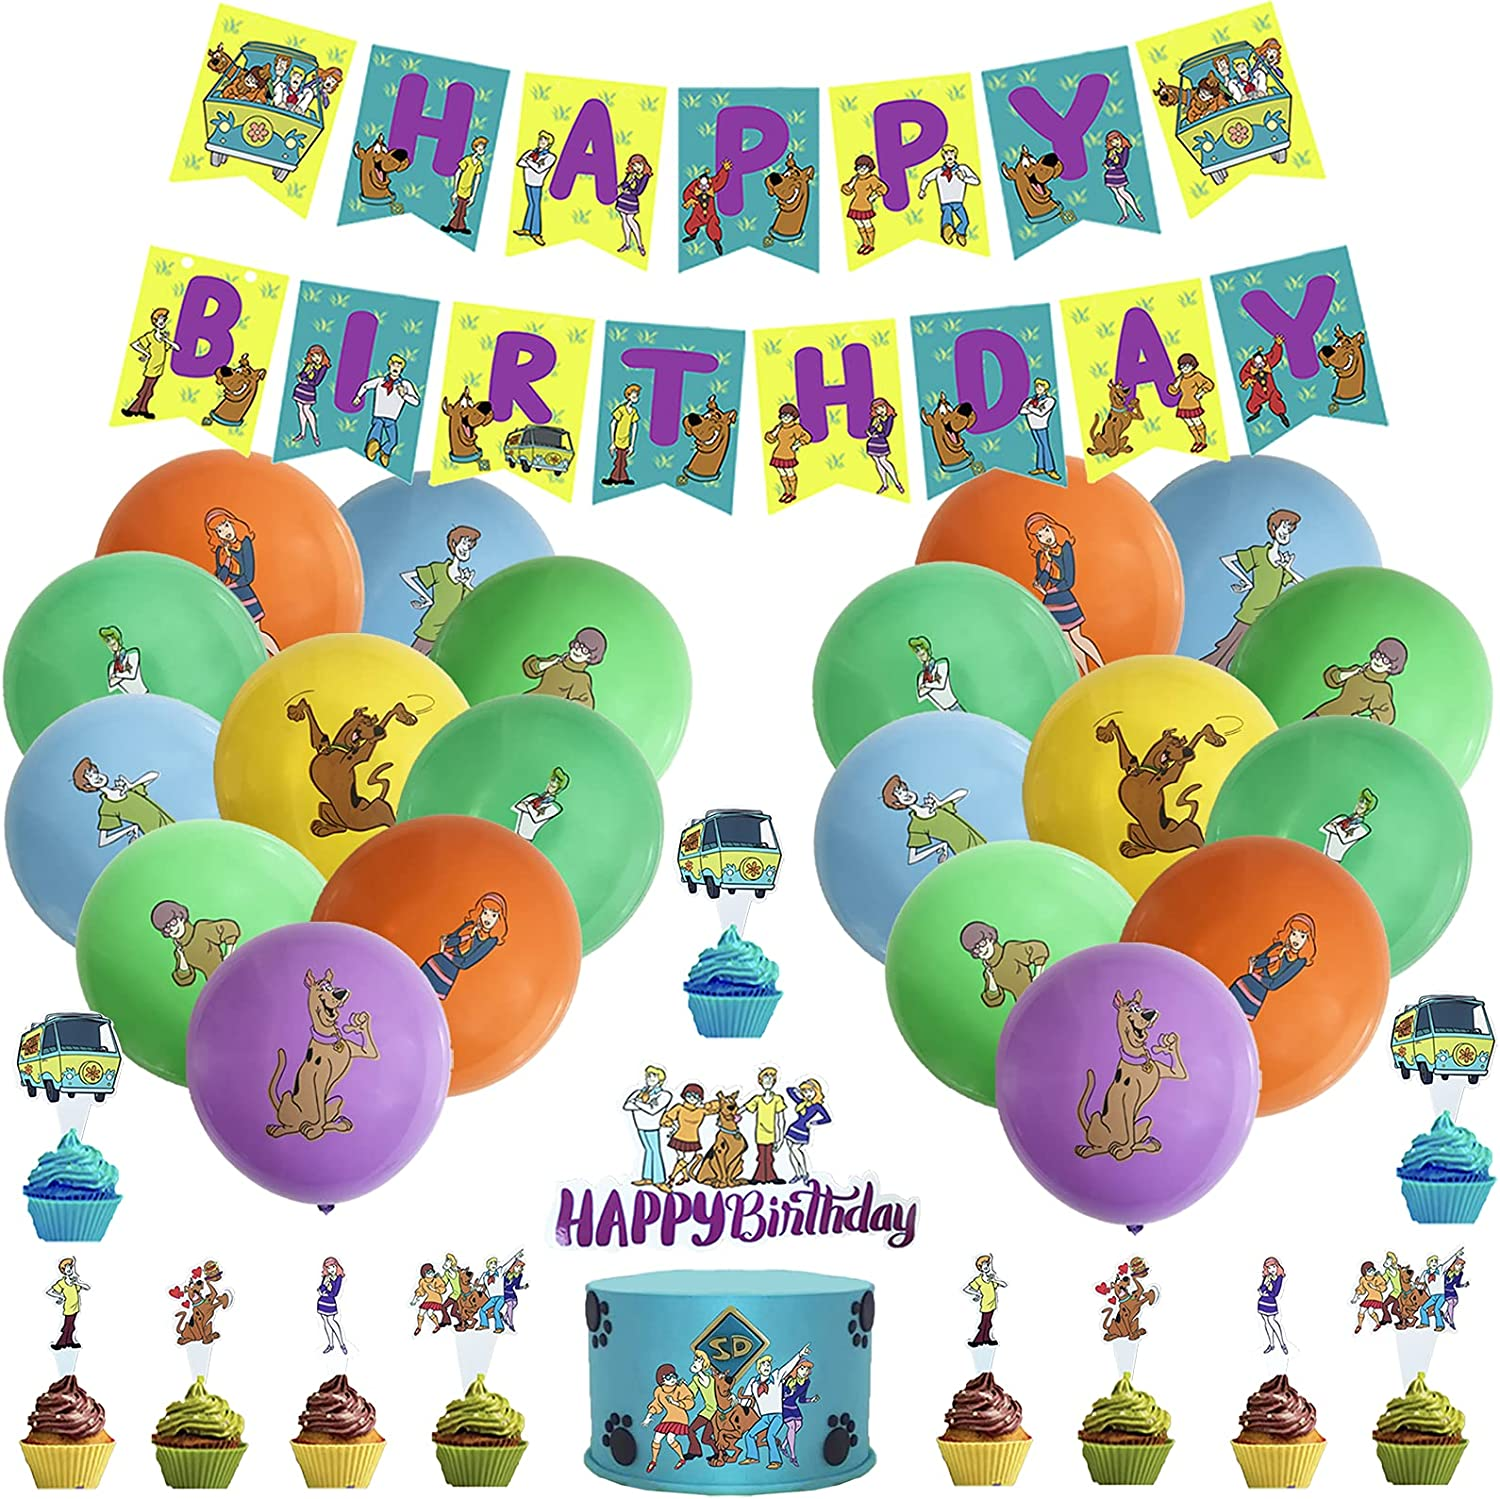 Scooby-Doo Birthday Party Decorations 5 ☆ very popular B Including Industry No. 1 Happy